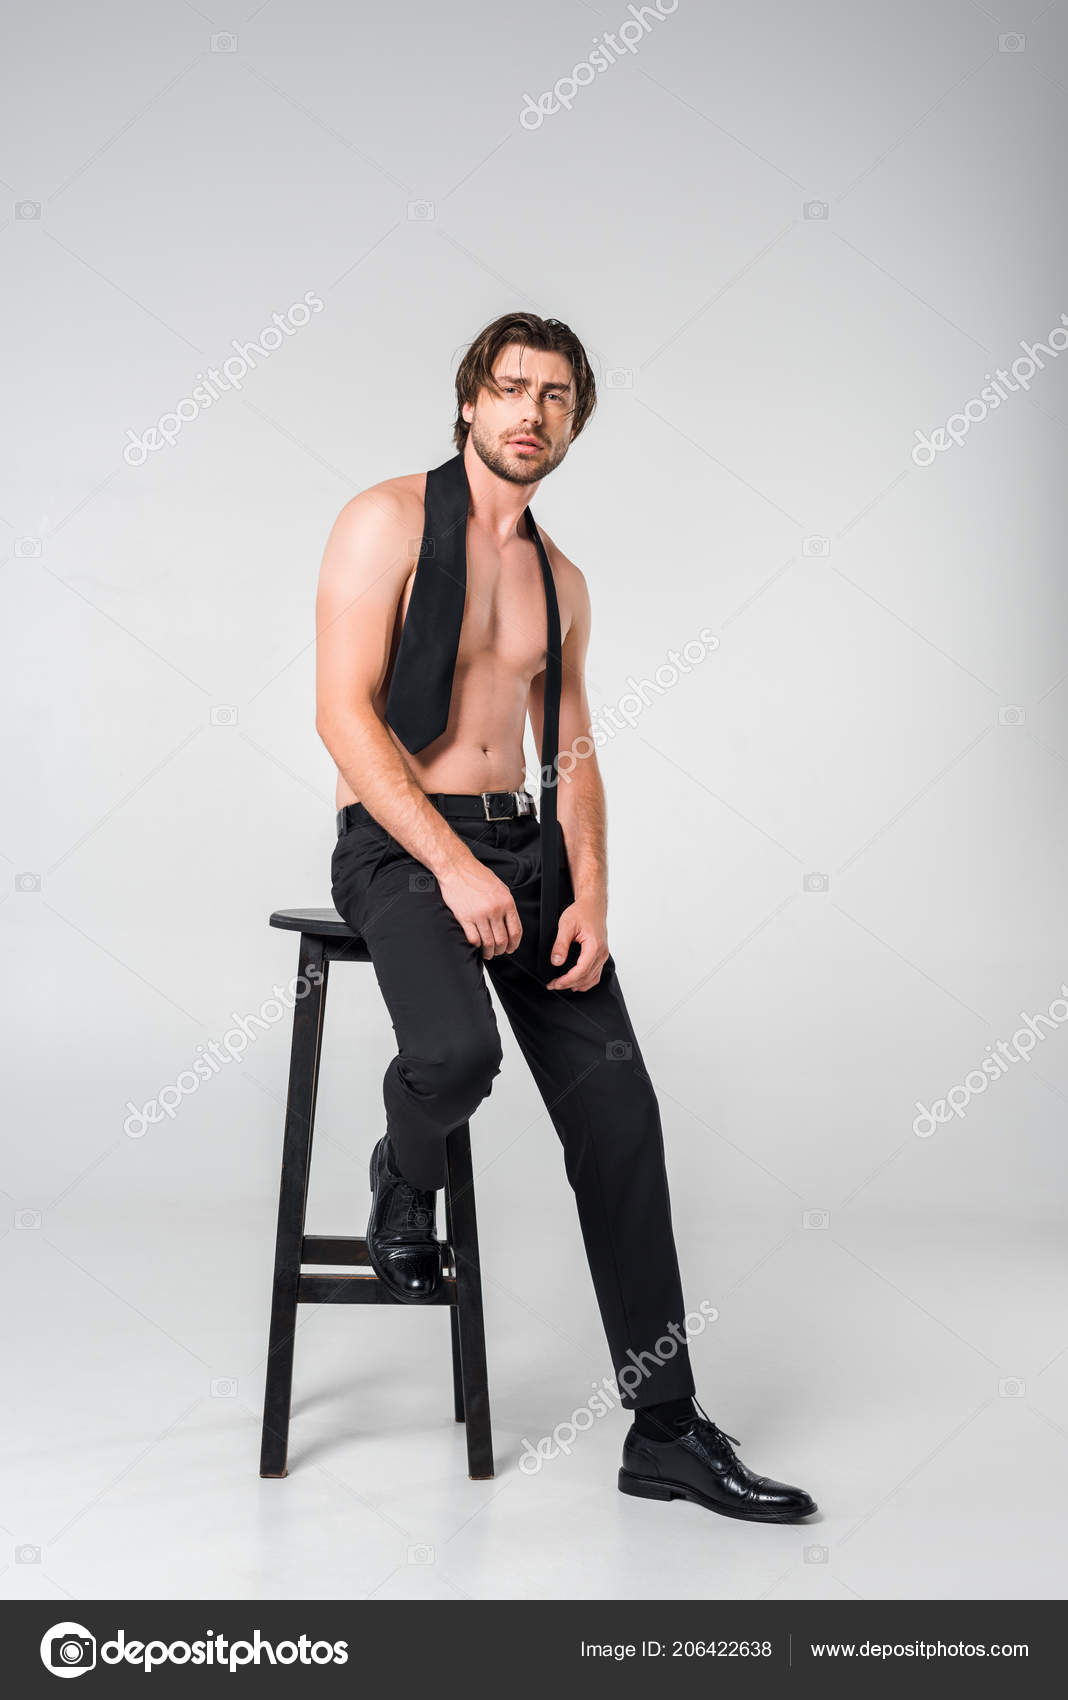 Chair Pants Shirtless Man Black Pants Tie Sitting Chair Grey Background